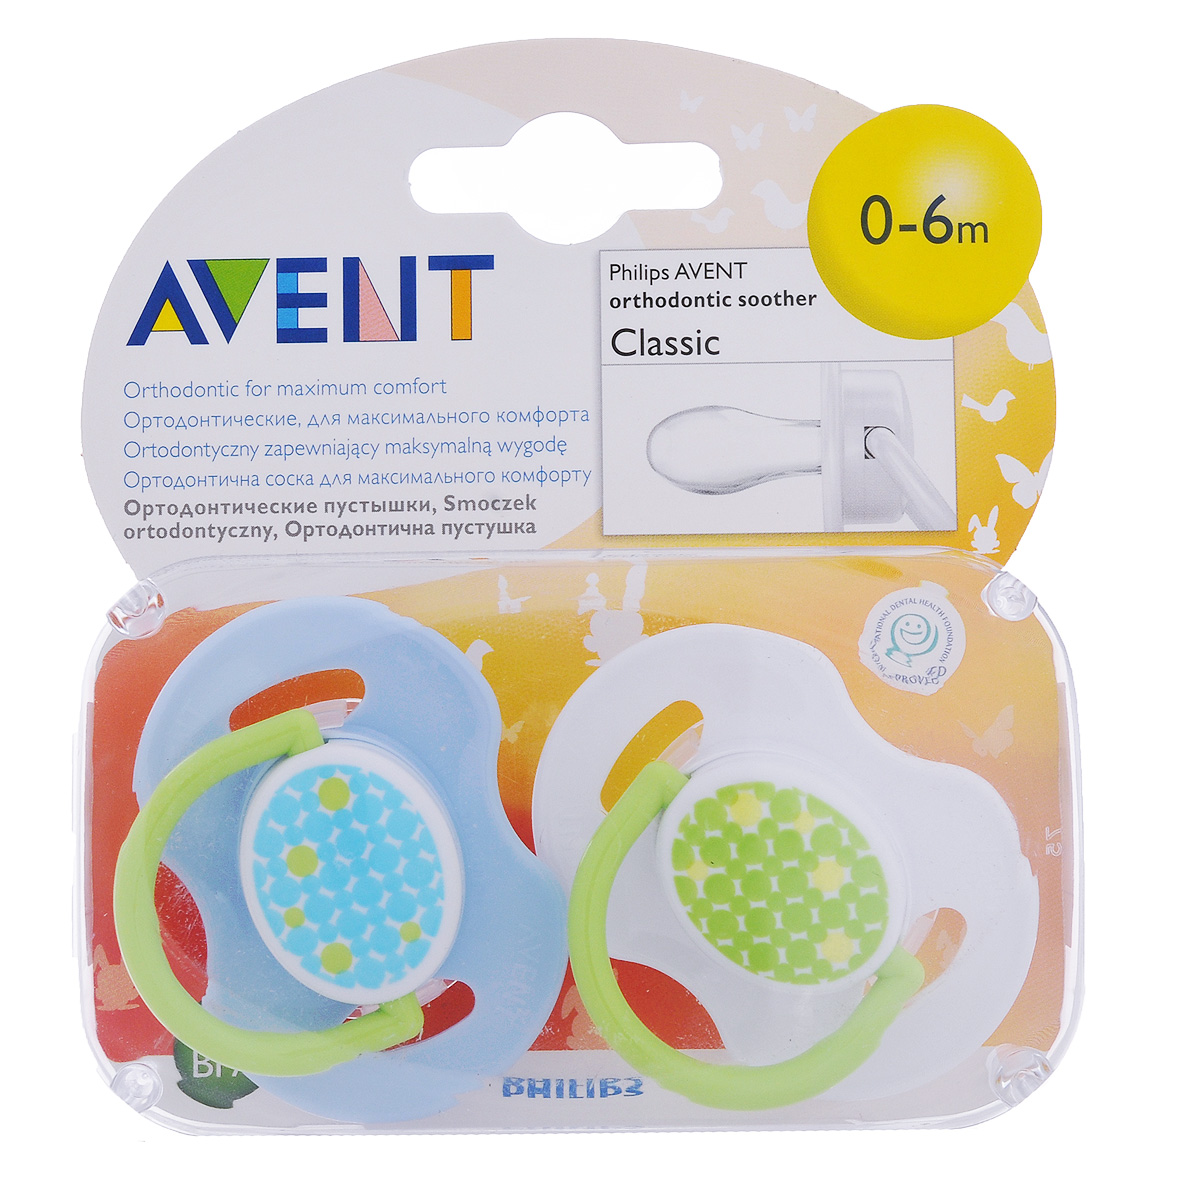 Philips Avent Пустышка серия FreeFlow SCF172/18, 2 шт., 0-6 мес. avent philips freeflow 6 18 мес уп 2шт bpa free avent авент